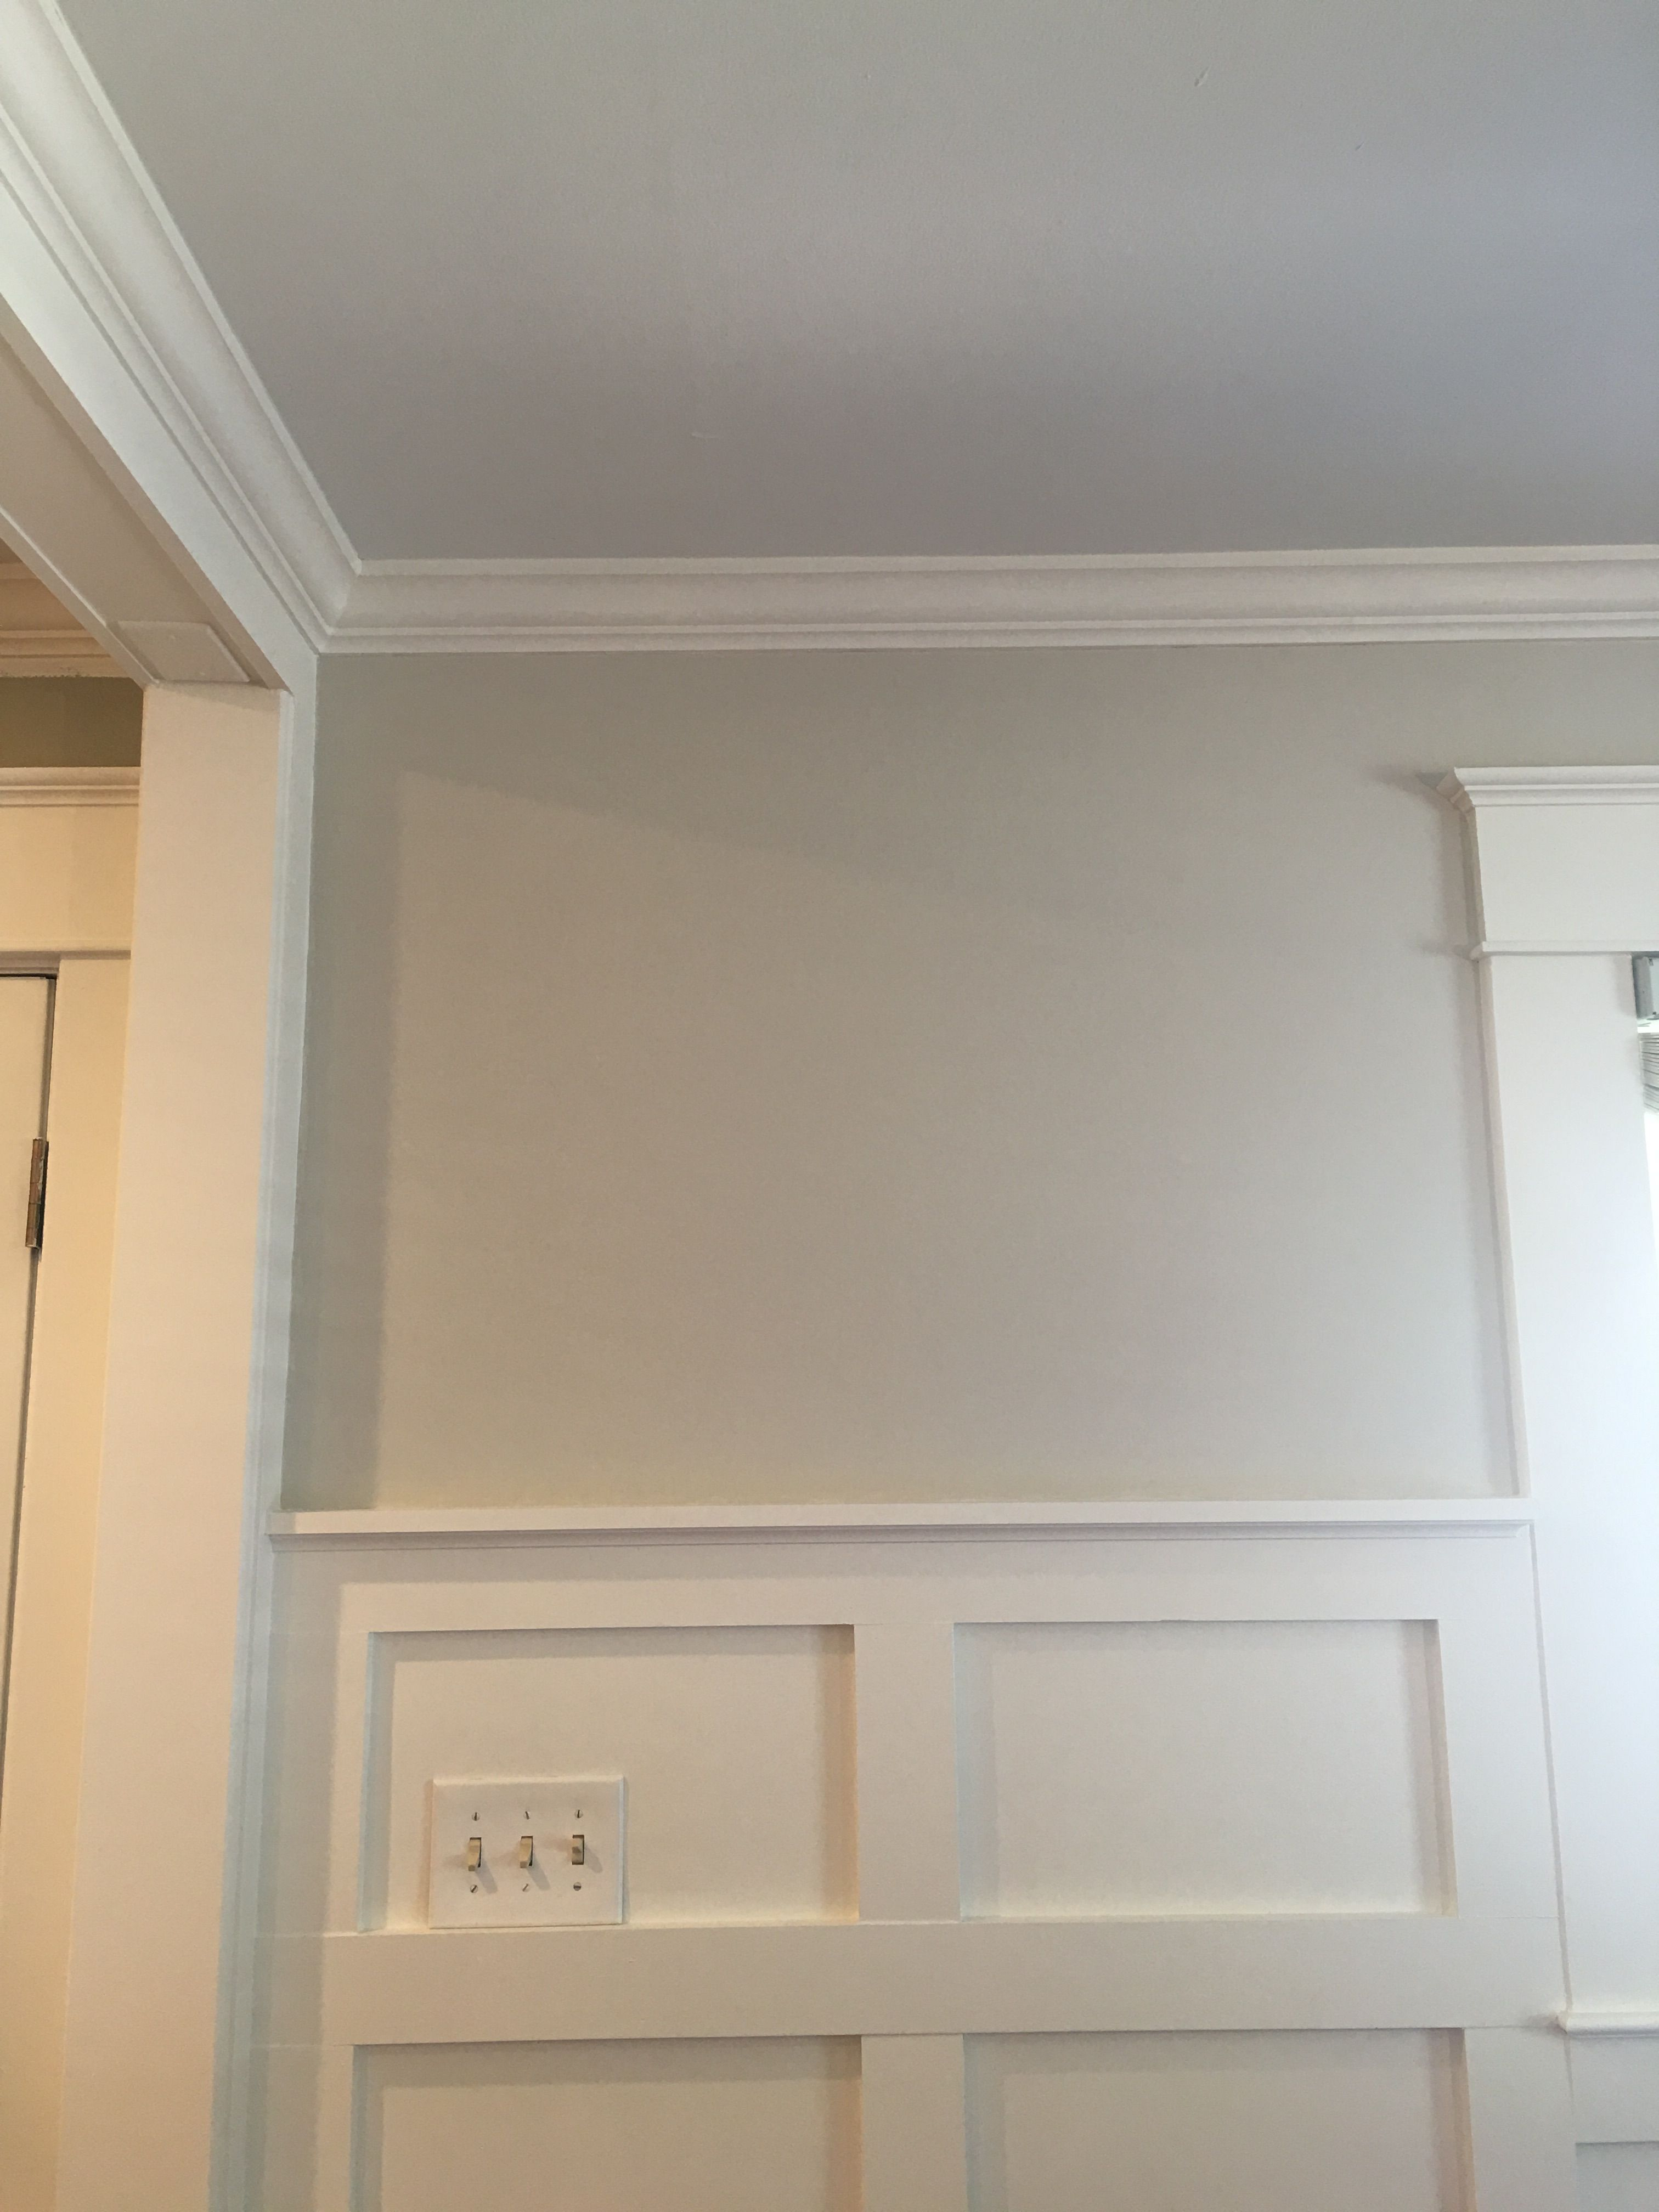 Benjamin Moore Paint Ceiling 25 Ocean Air Wall 50 Revere Pewter